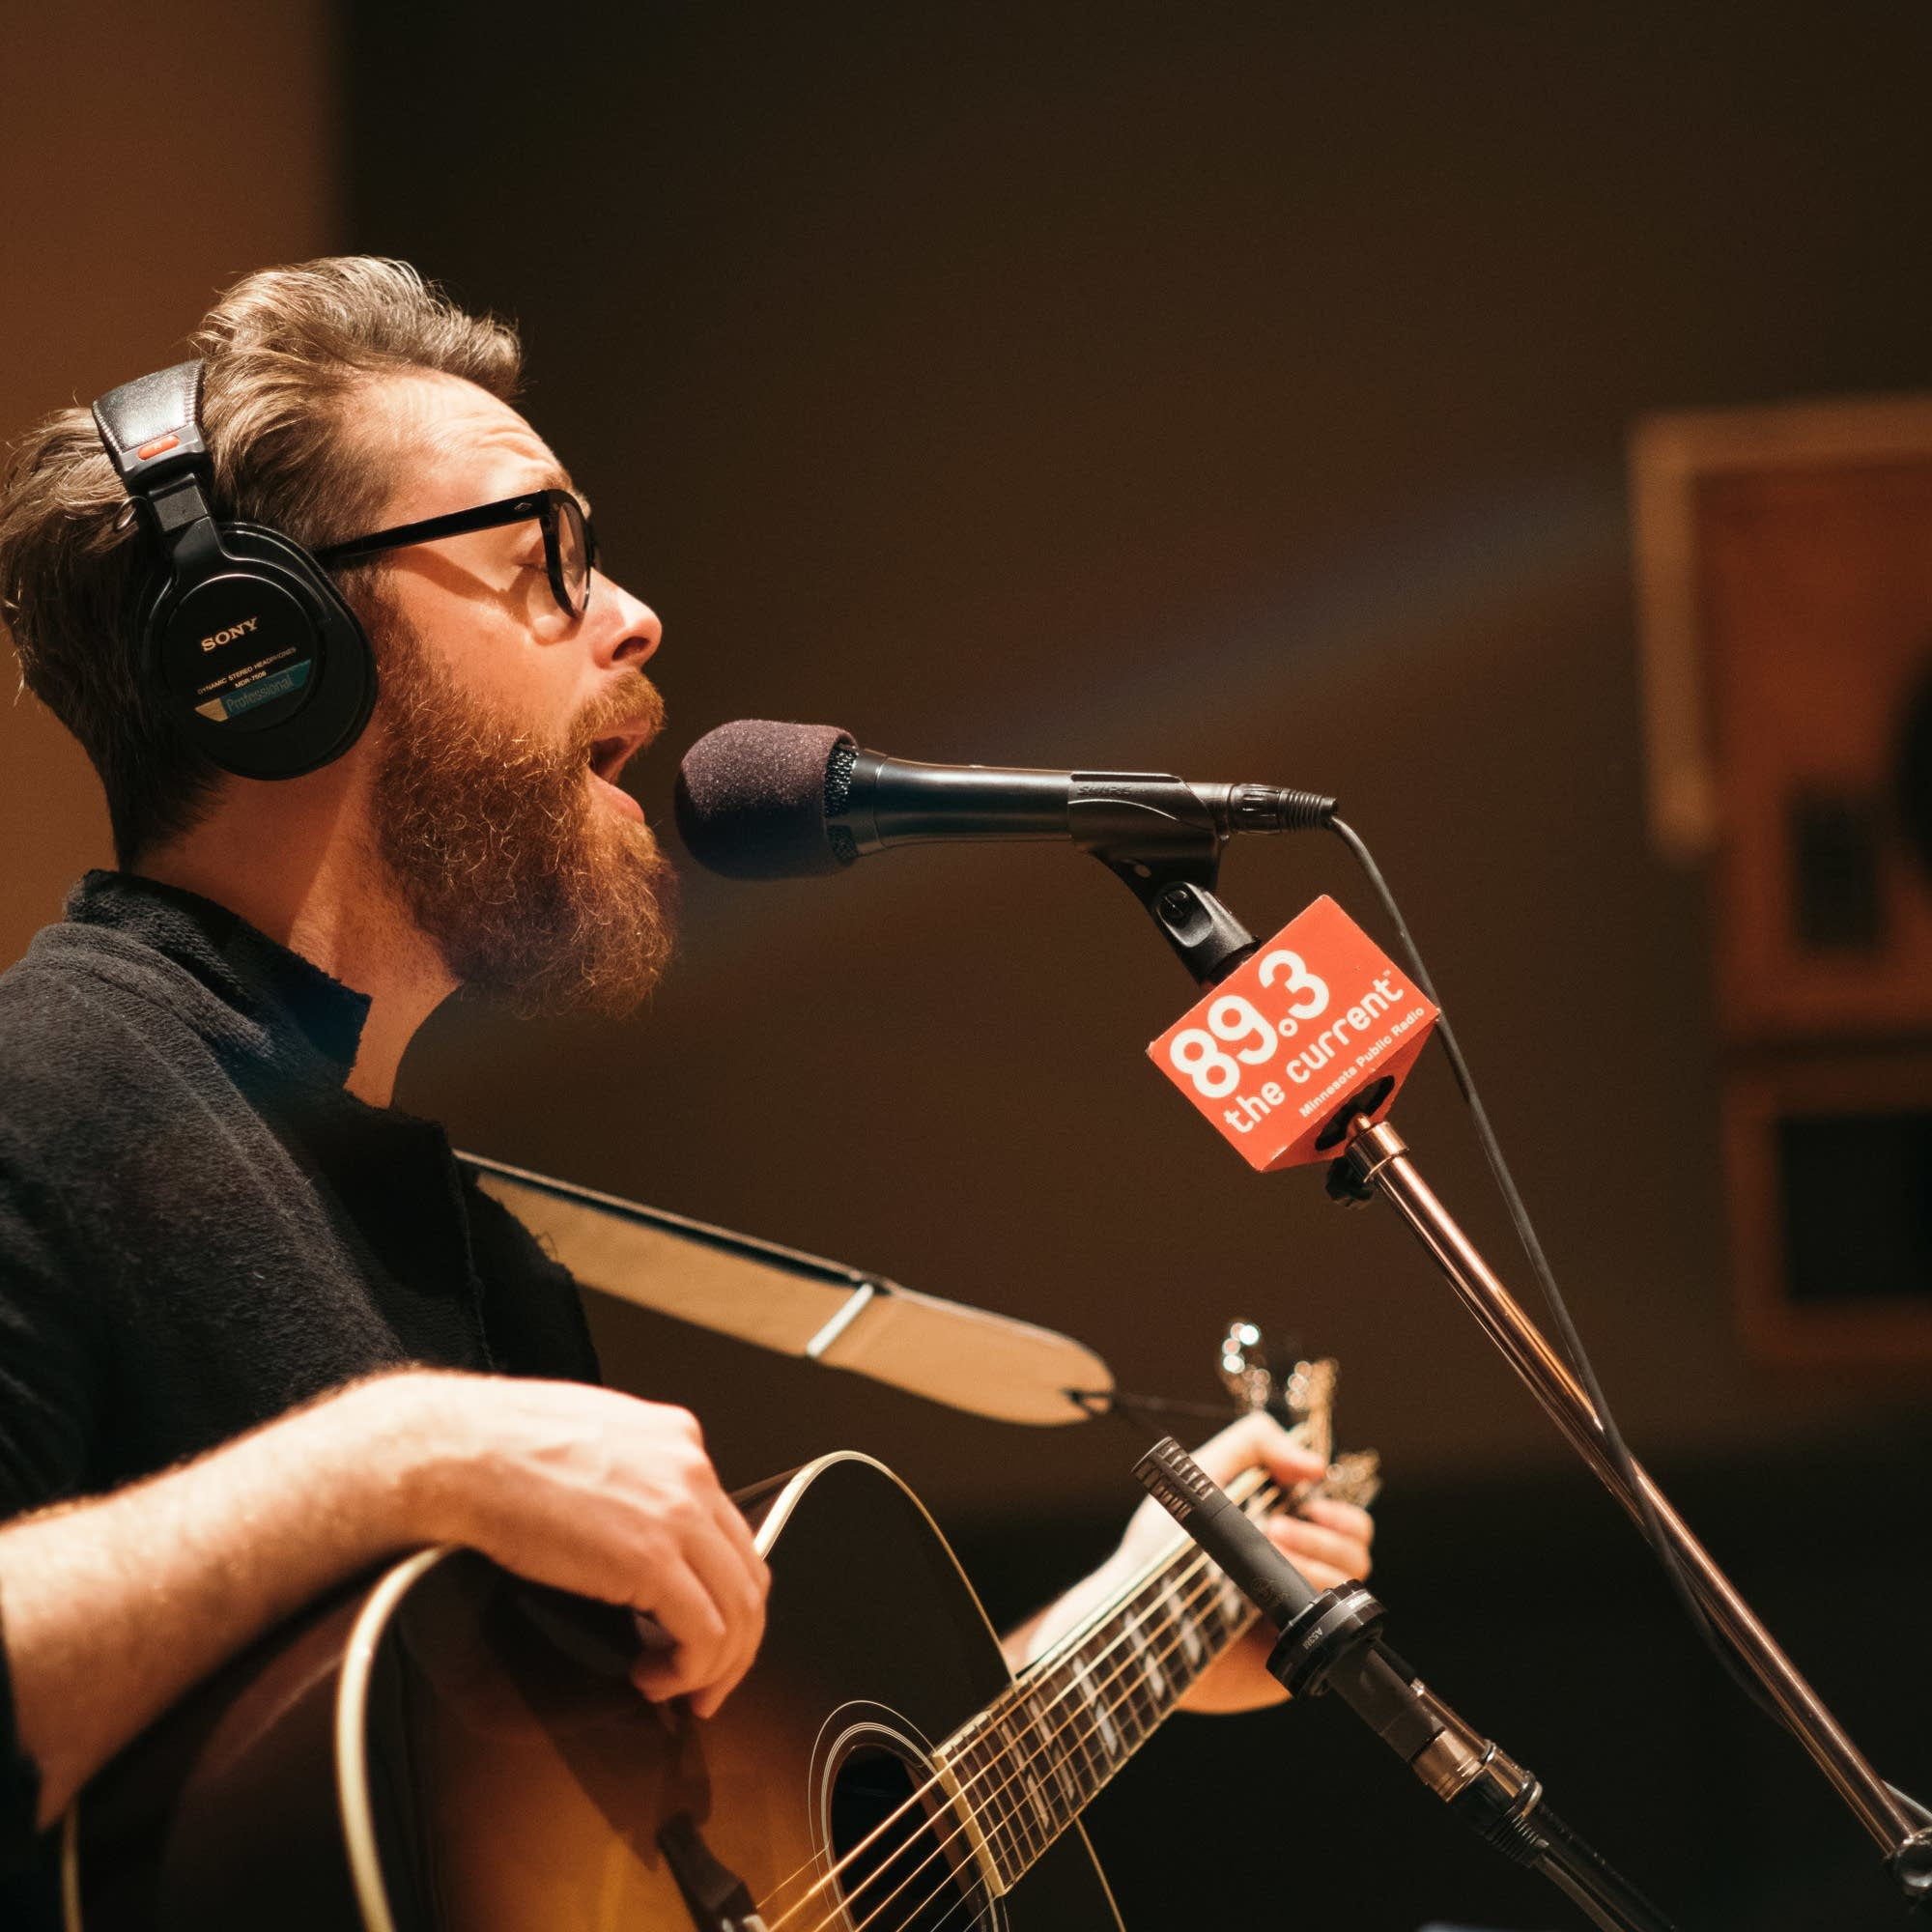 jeremy messersmith visits The Current